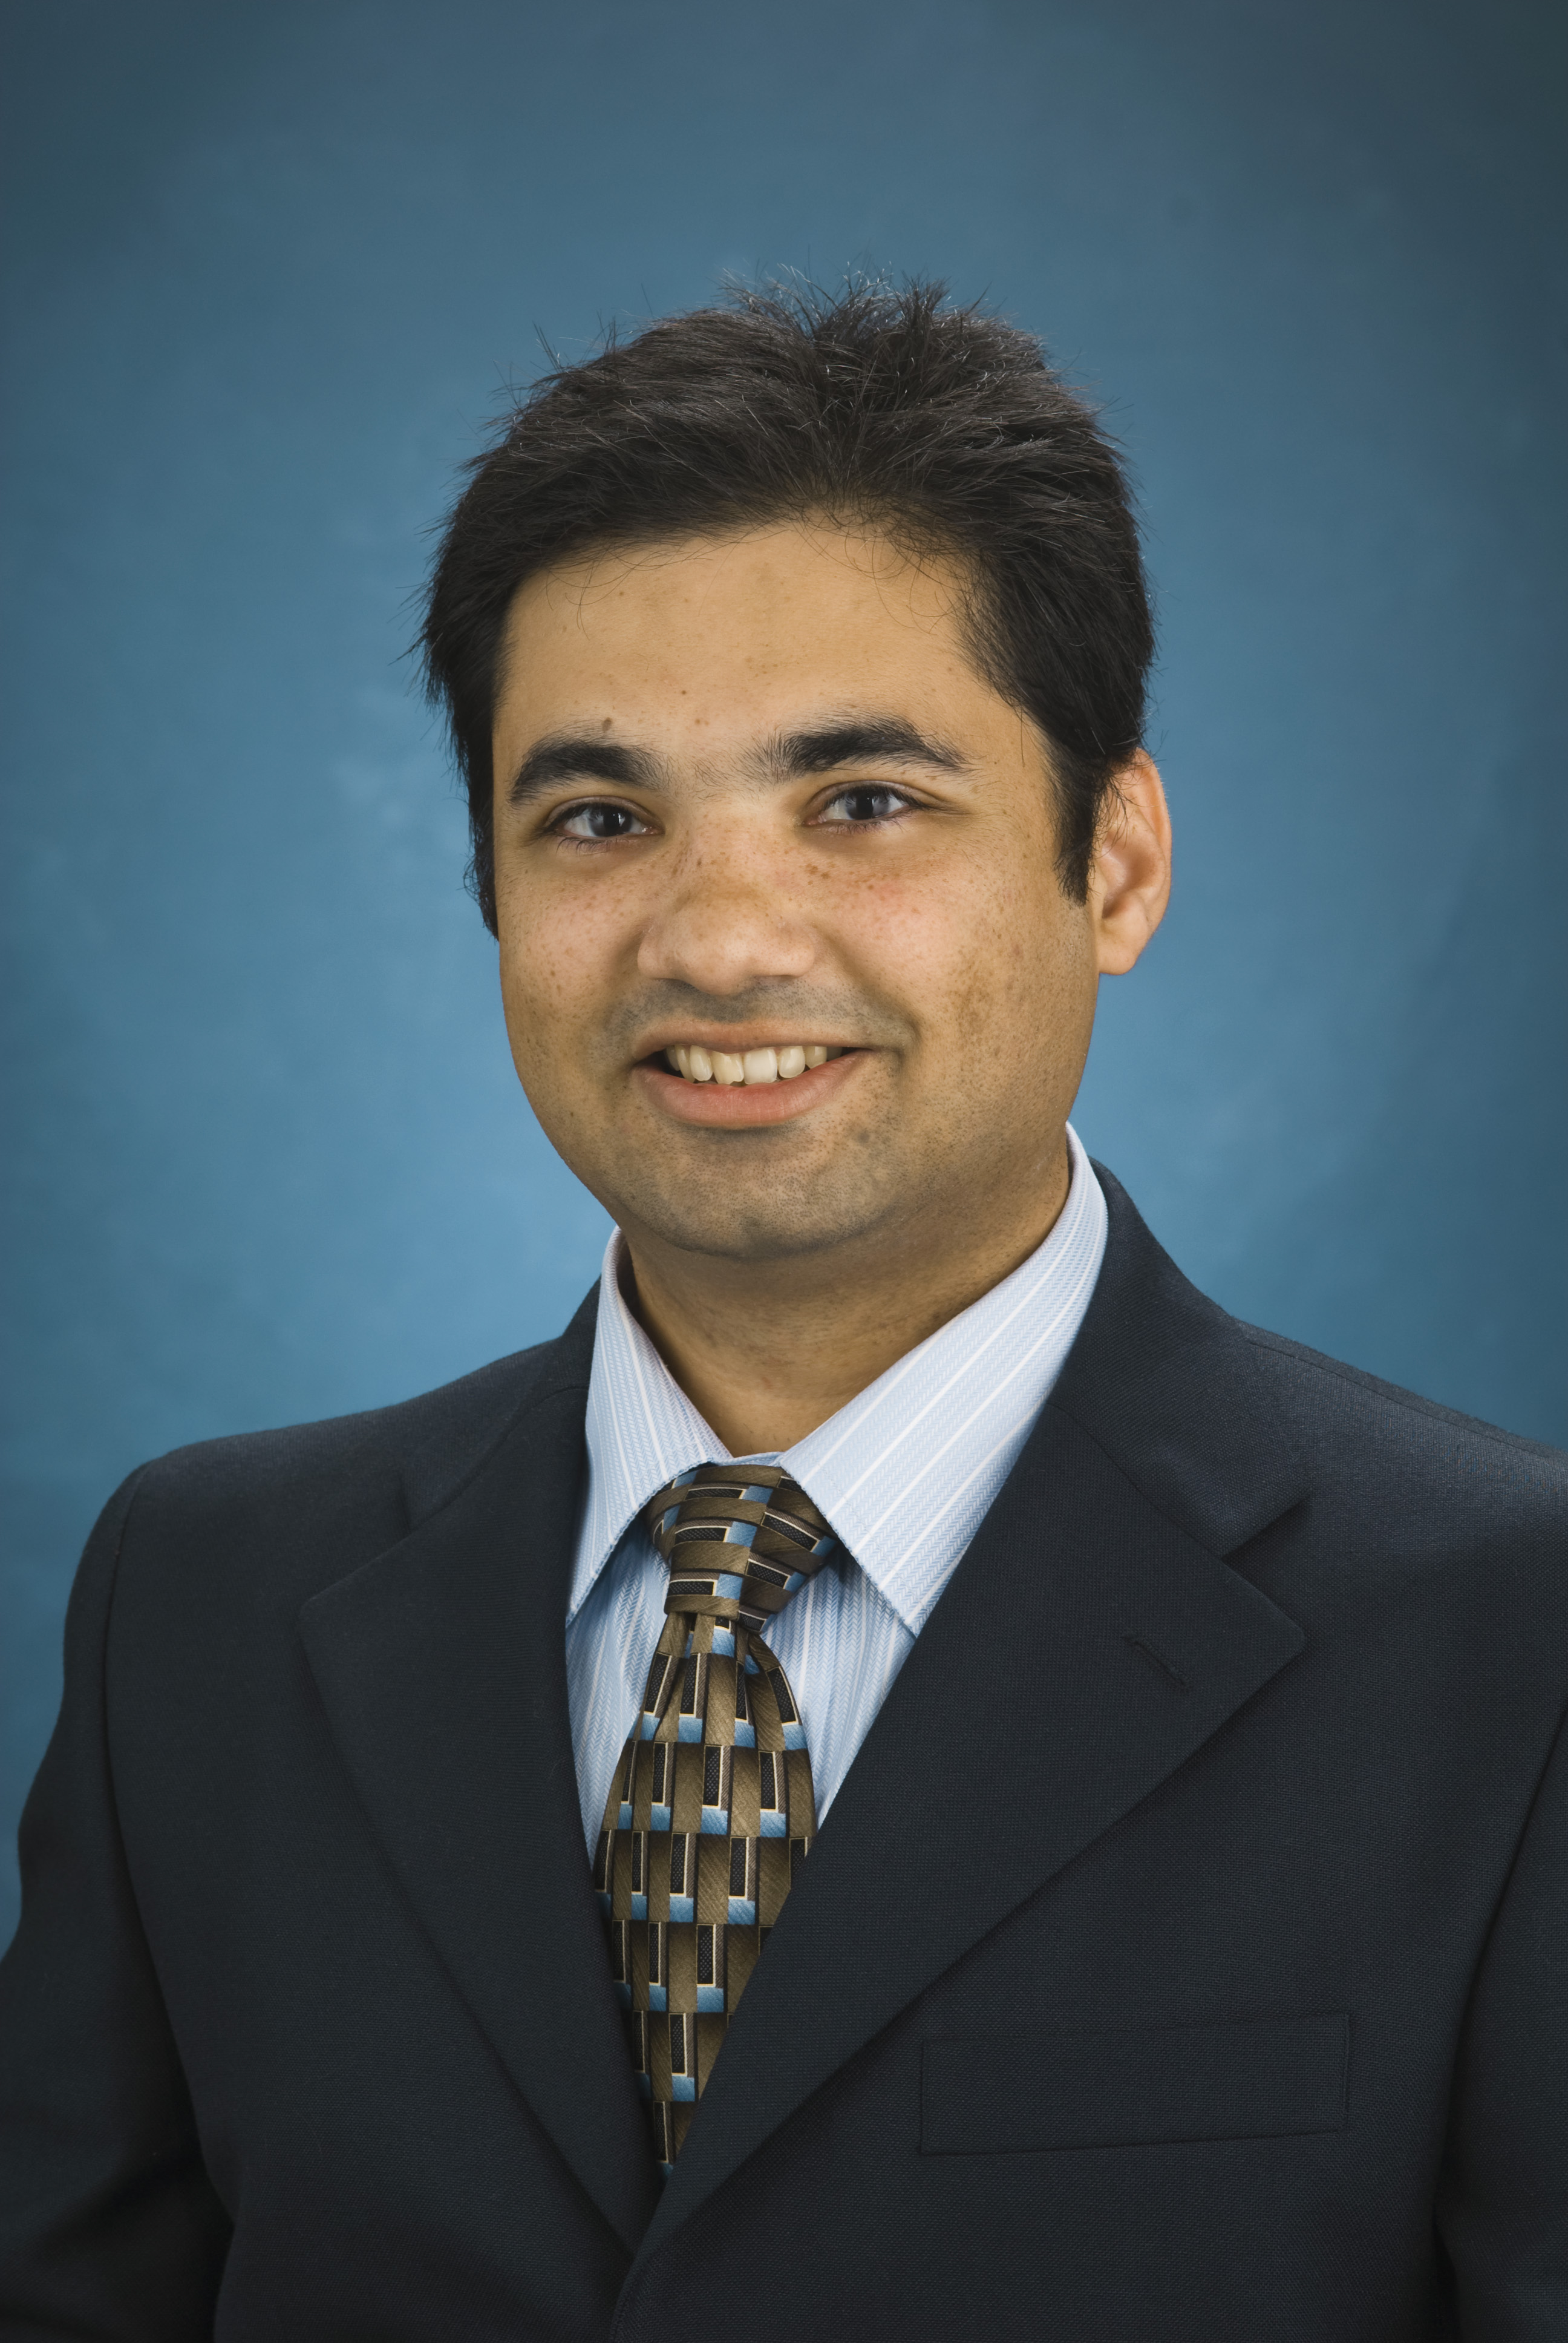 Kaustubh Bhalerao, Carle Illinos College of Medicine, University of Illinois at Urbana-Champaign